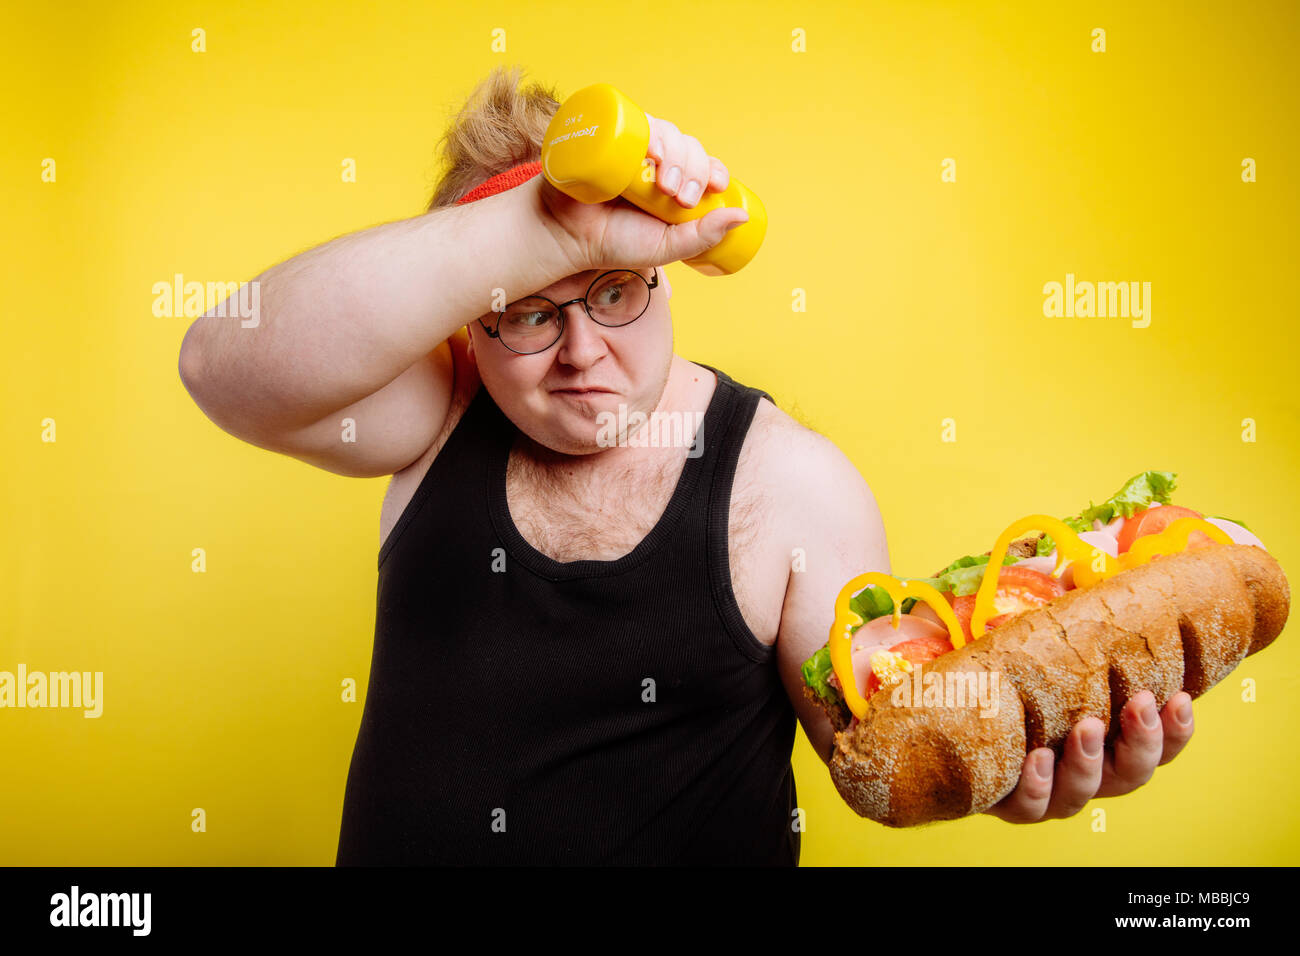 Fatigued fat man sweats while lifting burger - Stock Image